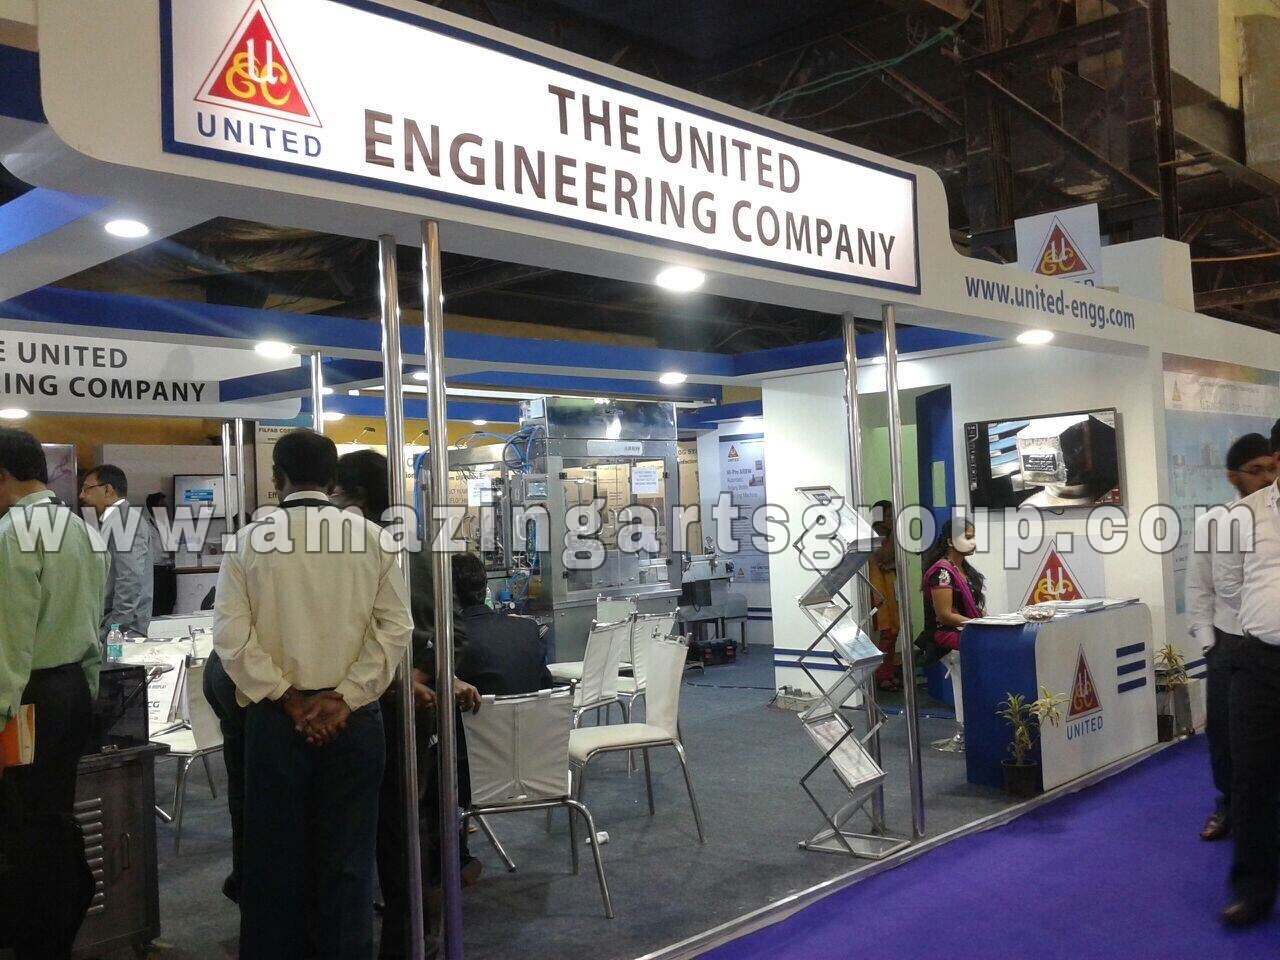 Cphi, Mumbai, Cphi, Exhibition stall designer Mumbai, Exhibition Stall fabricator Mumbai, Exhibition stand Contractor, Portable Exhibition Kit, Modular Exhibition Kit, Portable Solutions, booth Designing, booth Construction, Exhibition stand constructor, Exhibition Stand designer